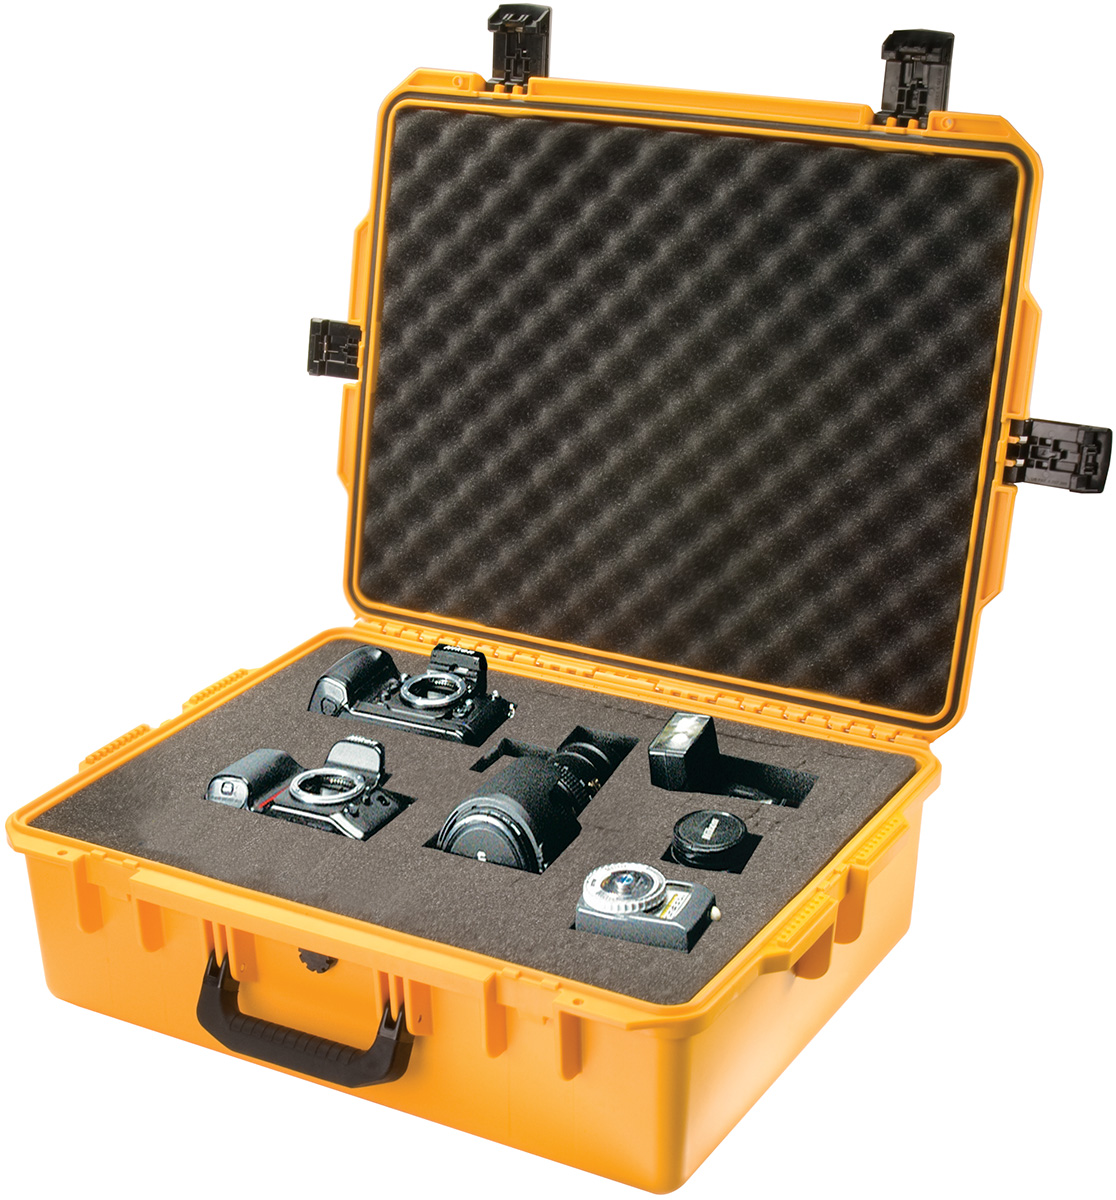 pelican im2700 storm photographers camera case